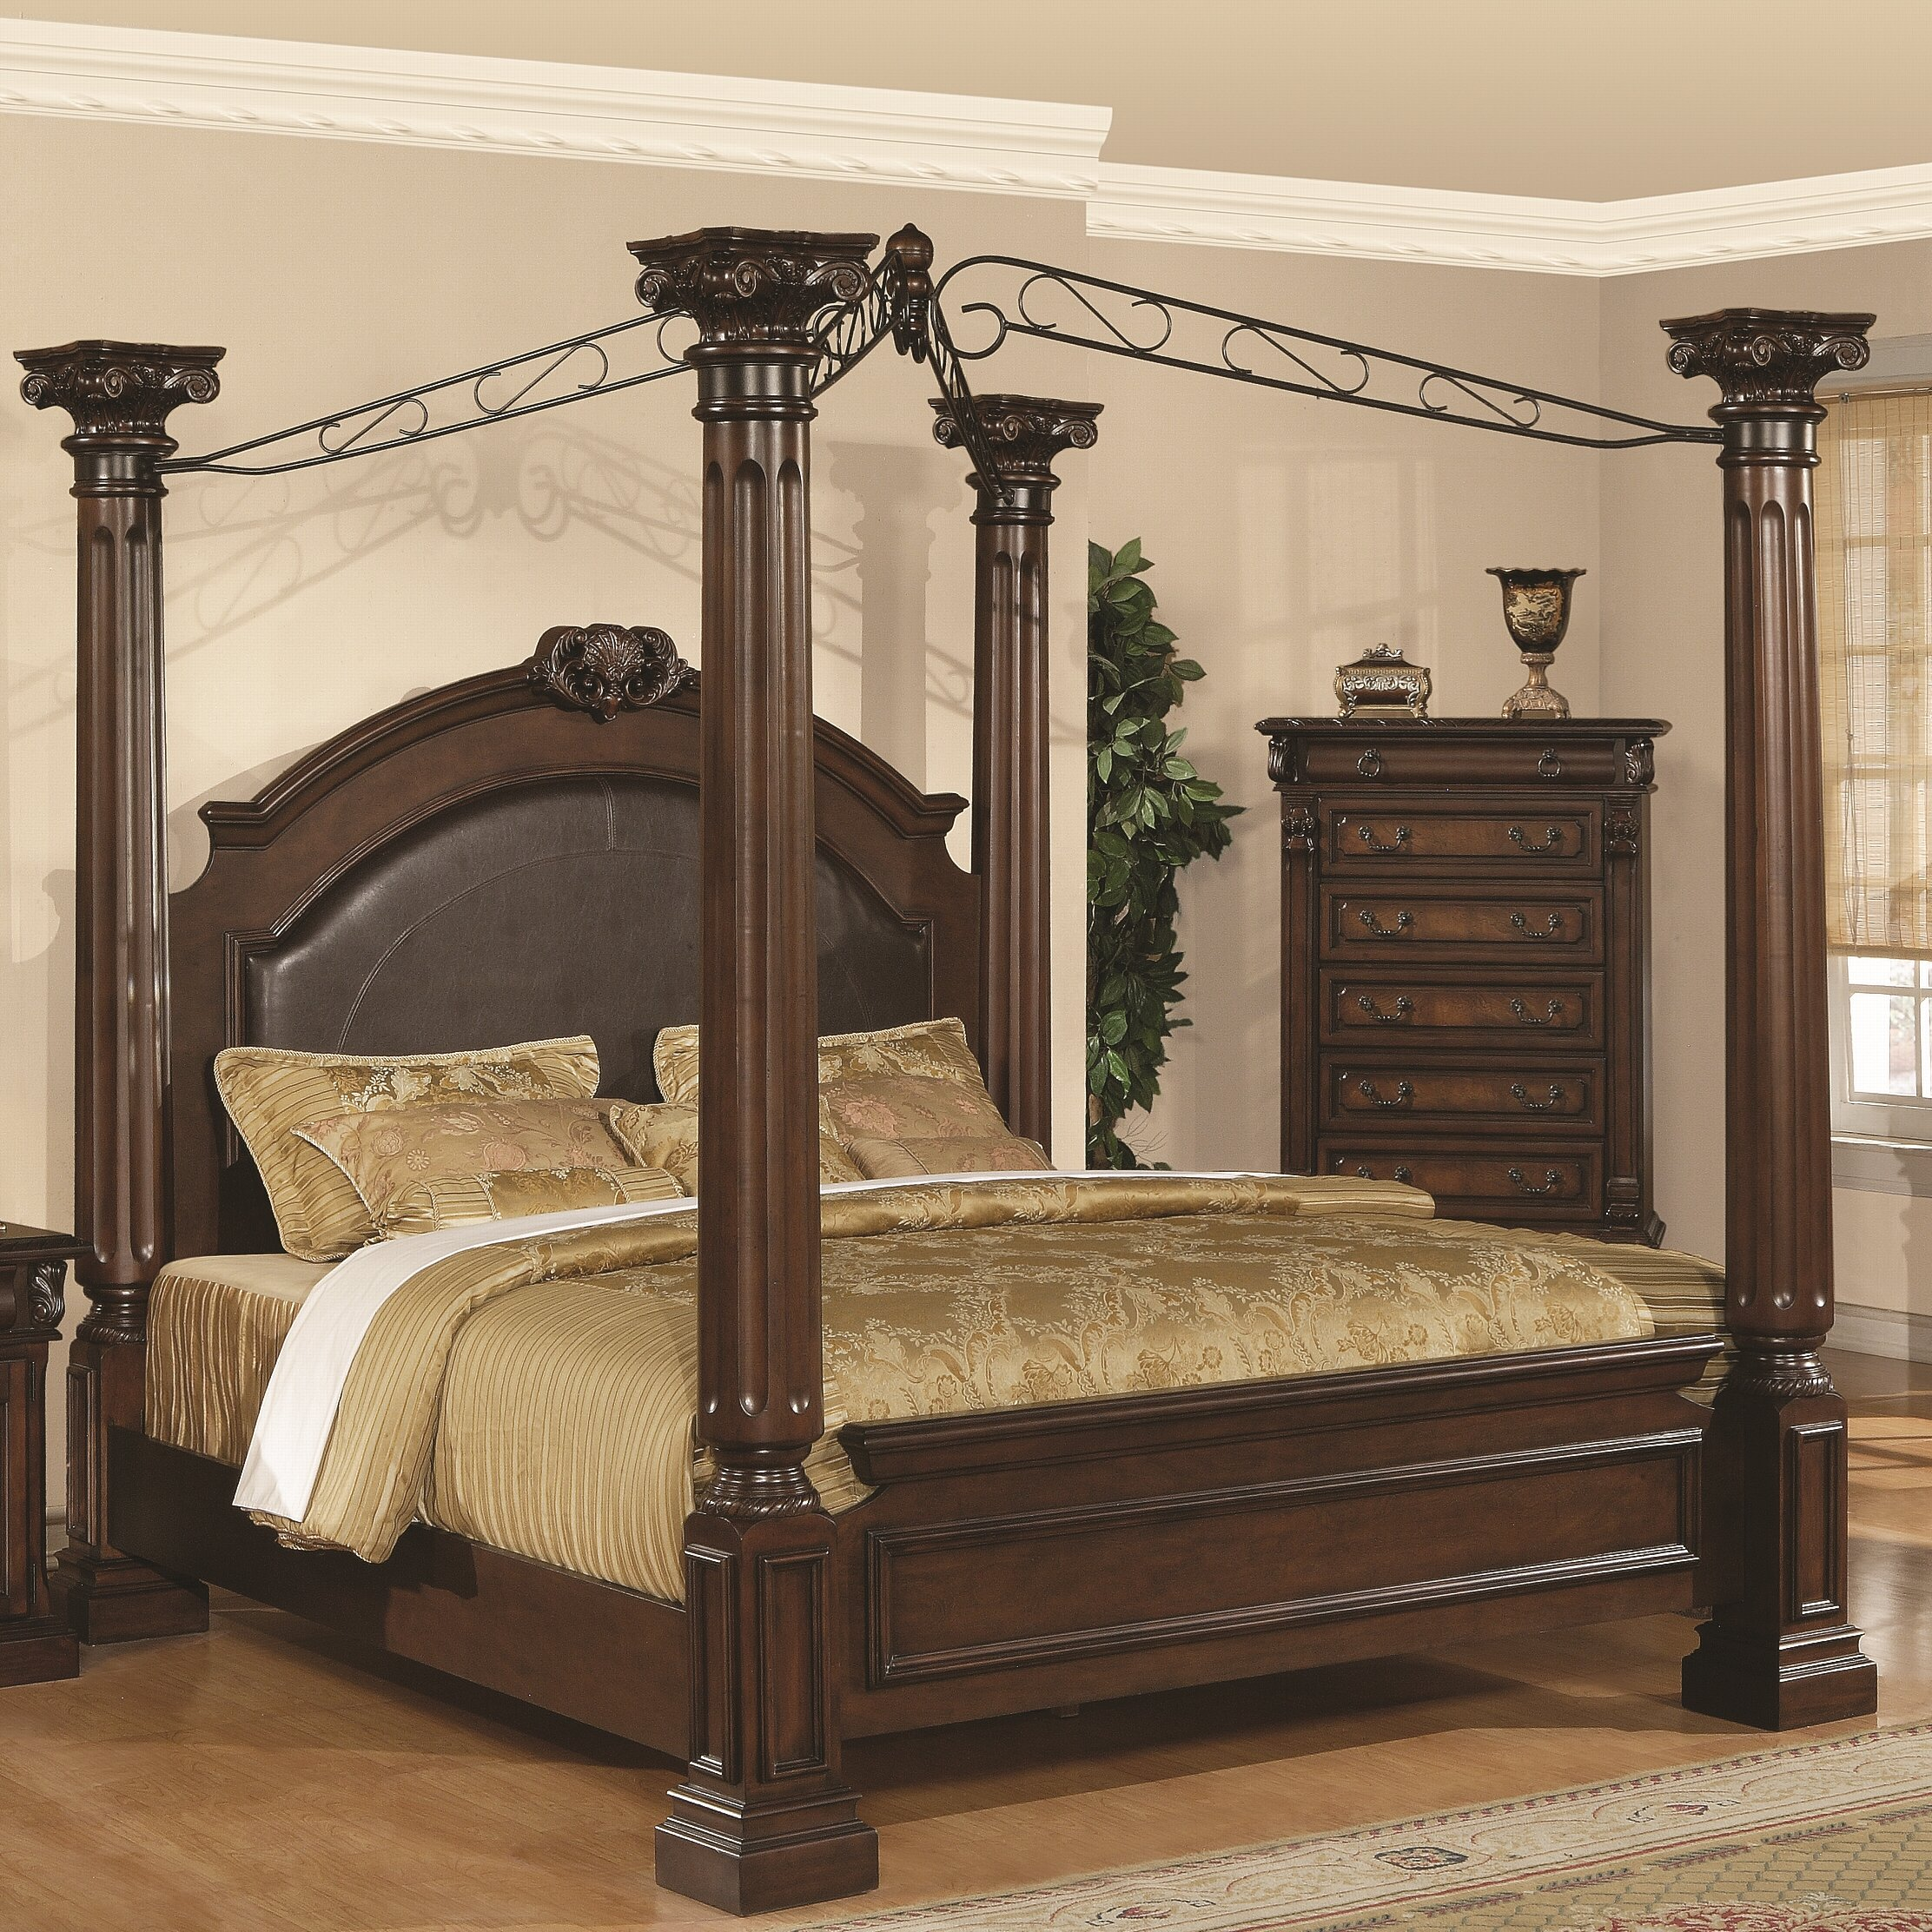 berkshire pine fittings four rooms lot drapes catalogues all ducal with bed catalogue us auction poster etc id en original